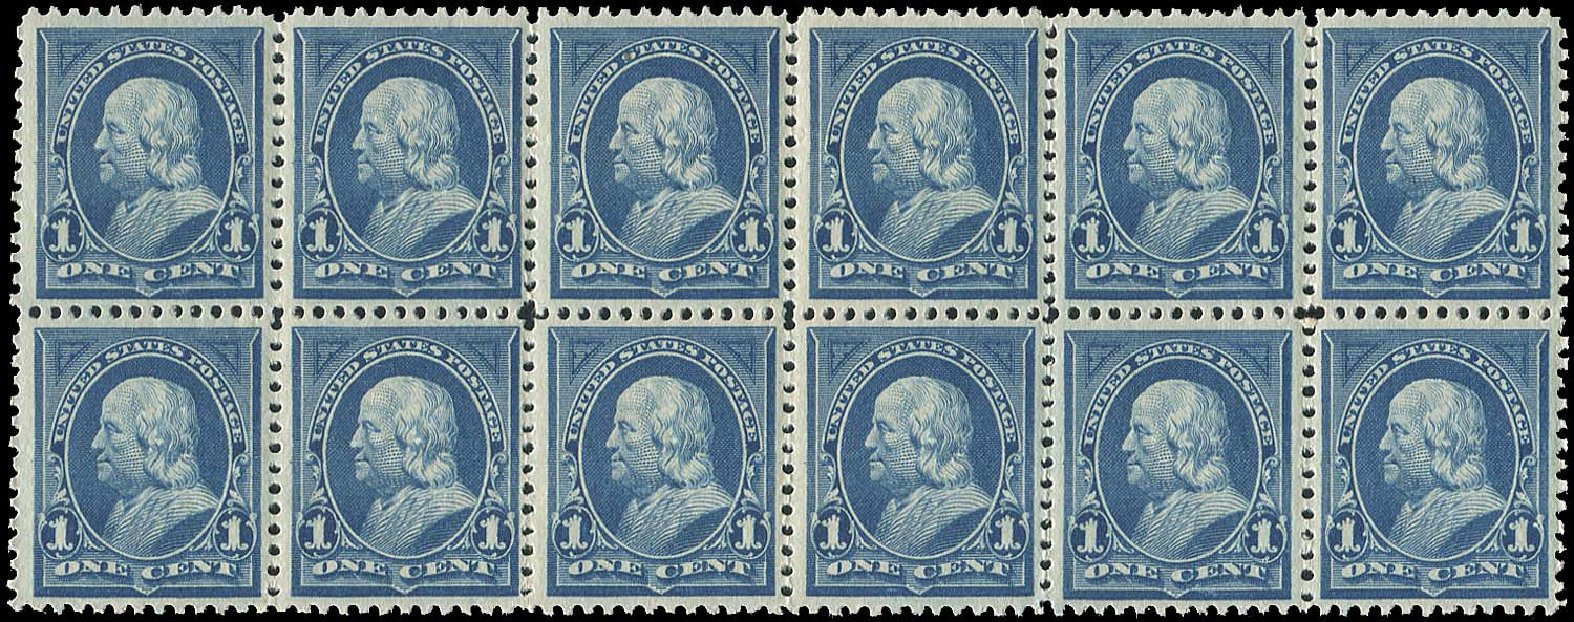 US Stamp Prices Scott Catalogue # 264 - 1895 1c Franklin. Regency-Superior, Aug 2015, Sale 112, Lot 535